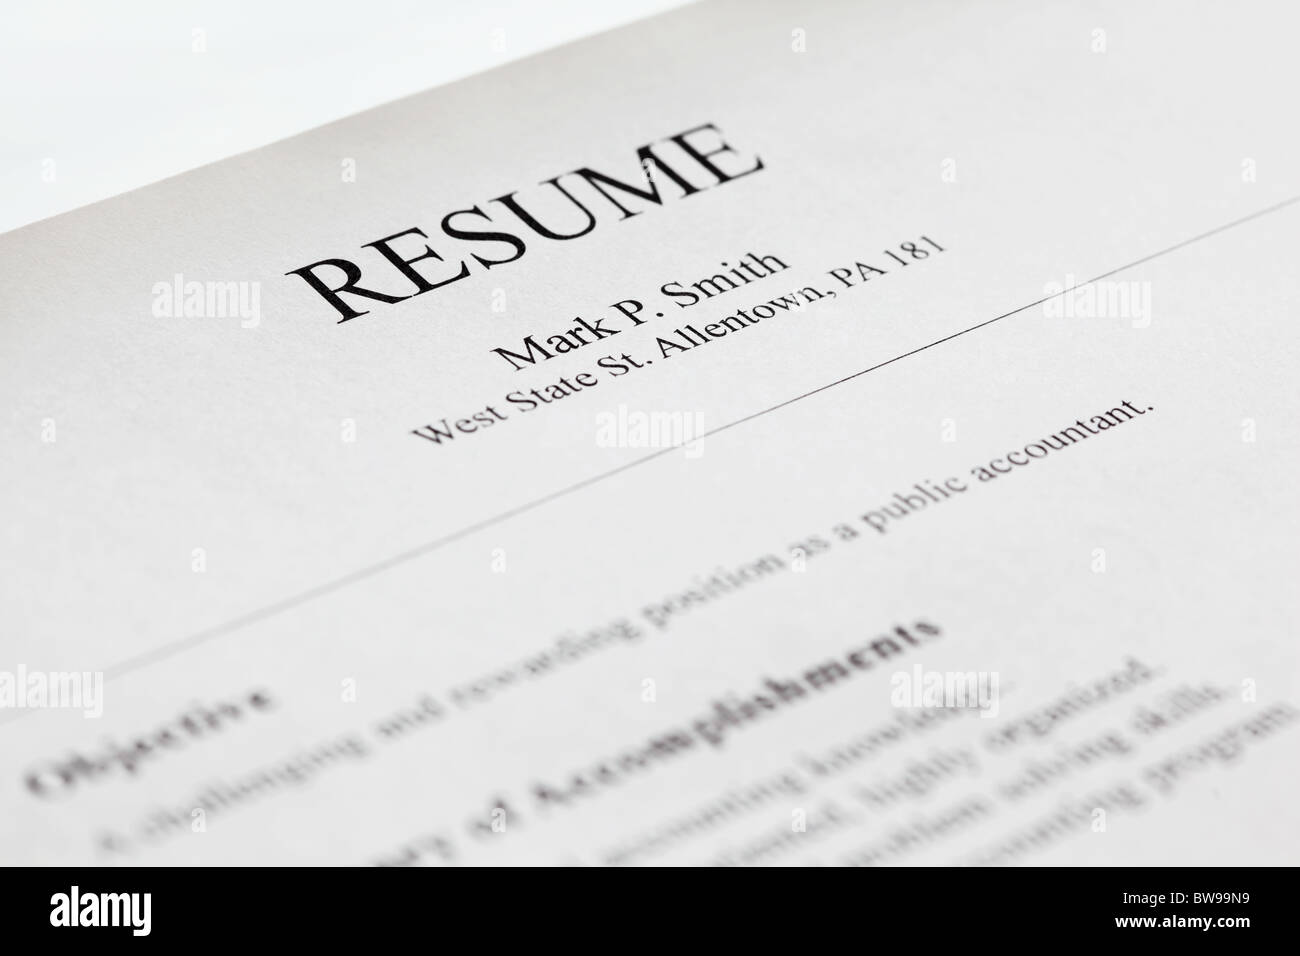 account manager resume form title page close up shallow dof stock